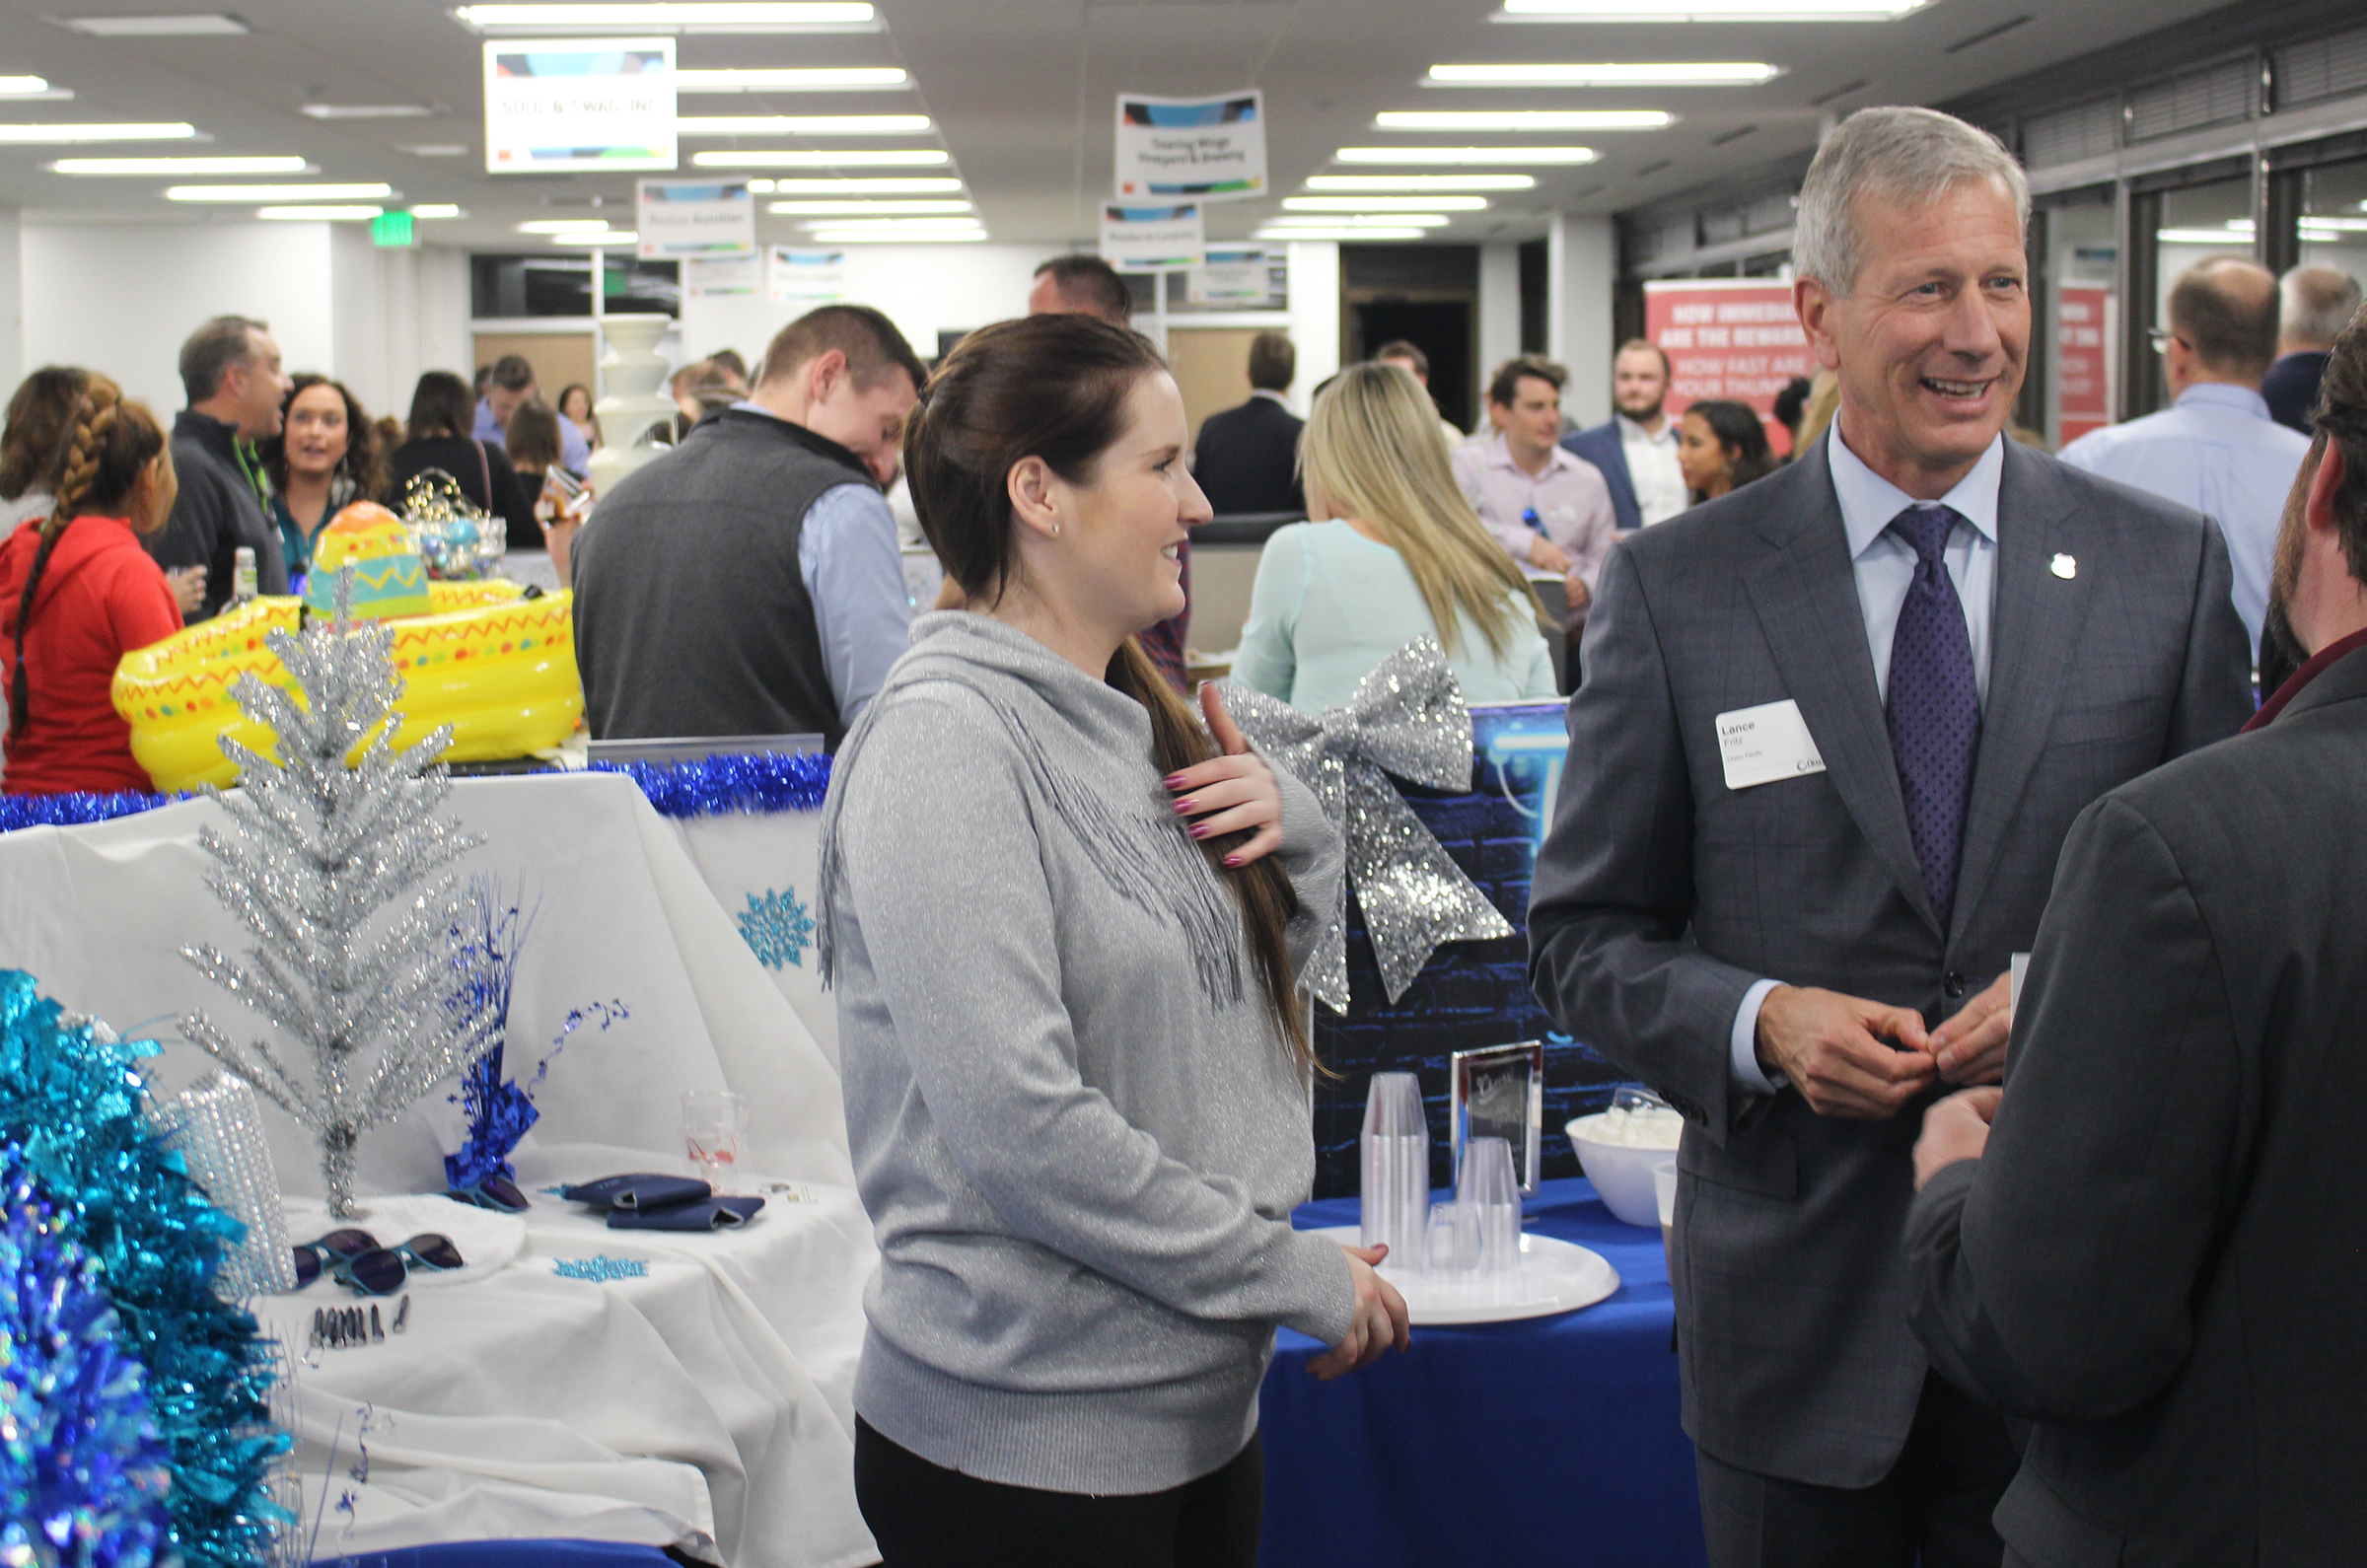 More than 500 chamber members attended the Greater Omaha Chamber Member Appreciation Holiday Open House on Thursday, Dec. 5, 2019. (Photo by Scott Stewart)